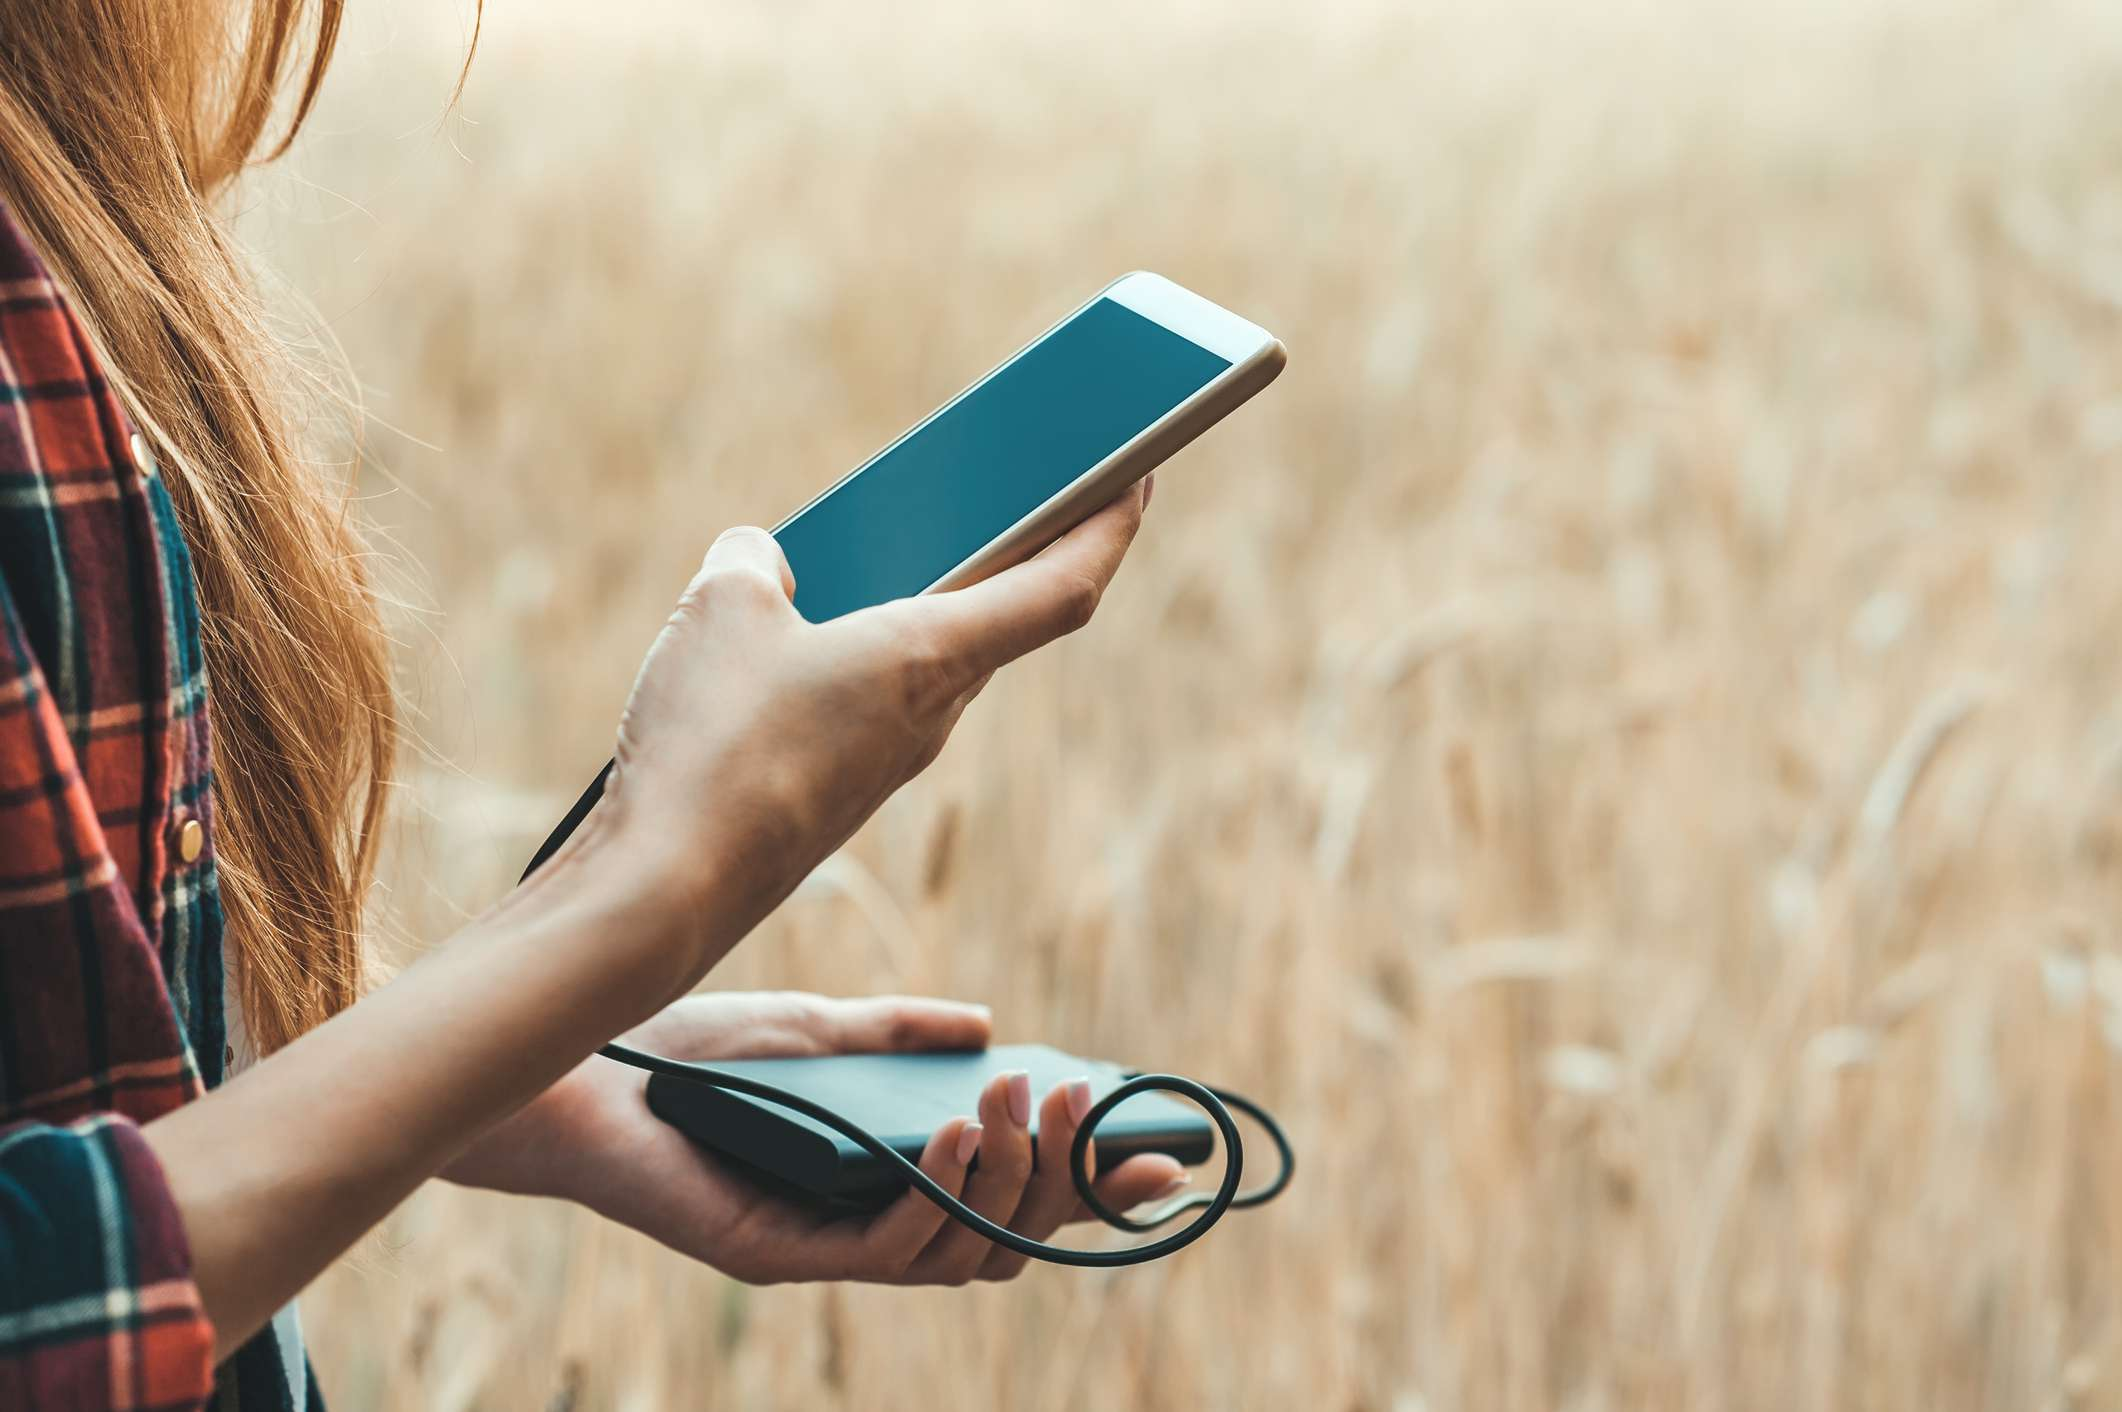 Someone in a sunny, yellow field holding a smartphone connected to a power bank.